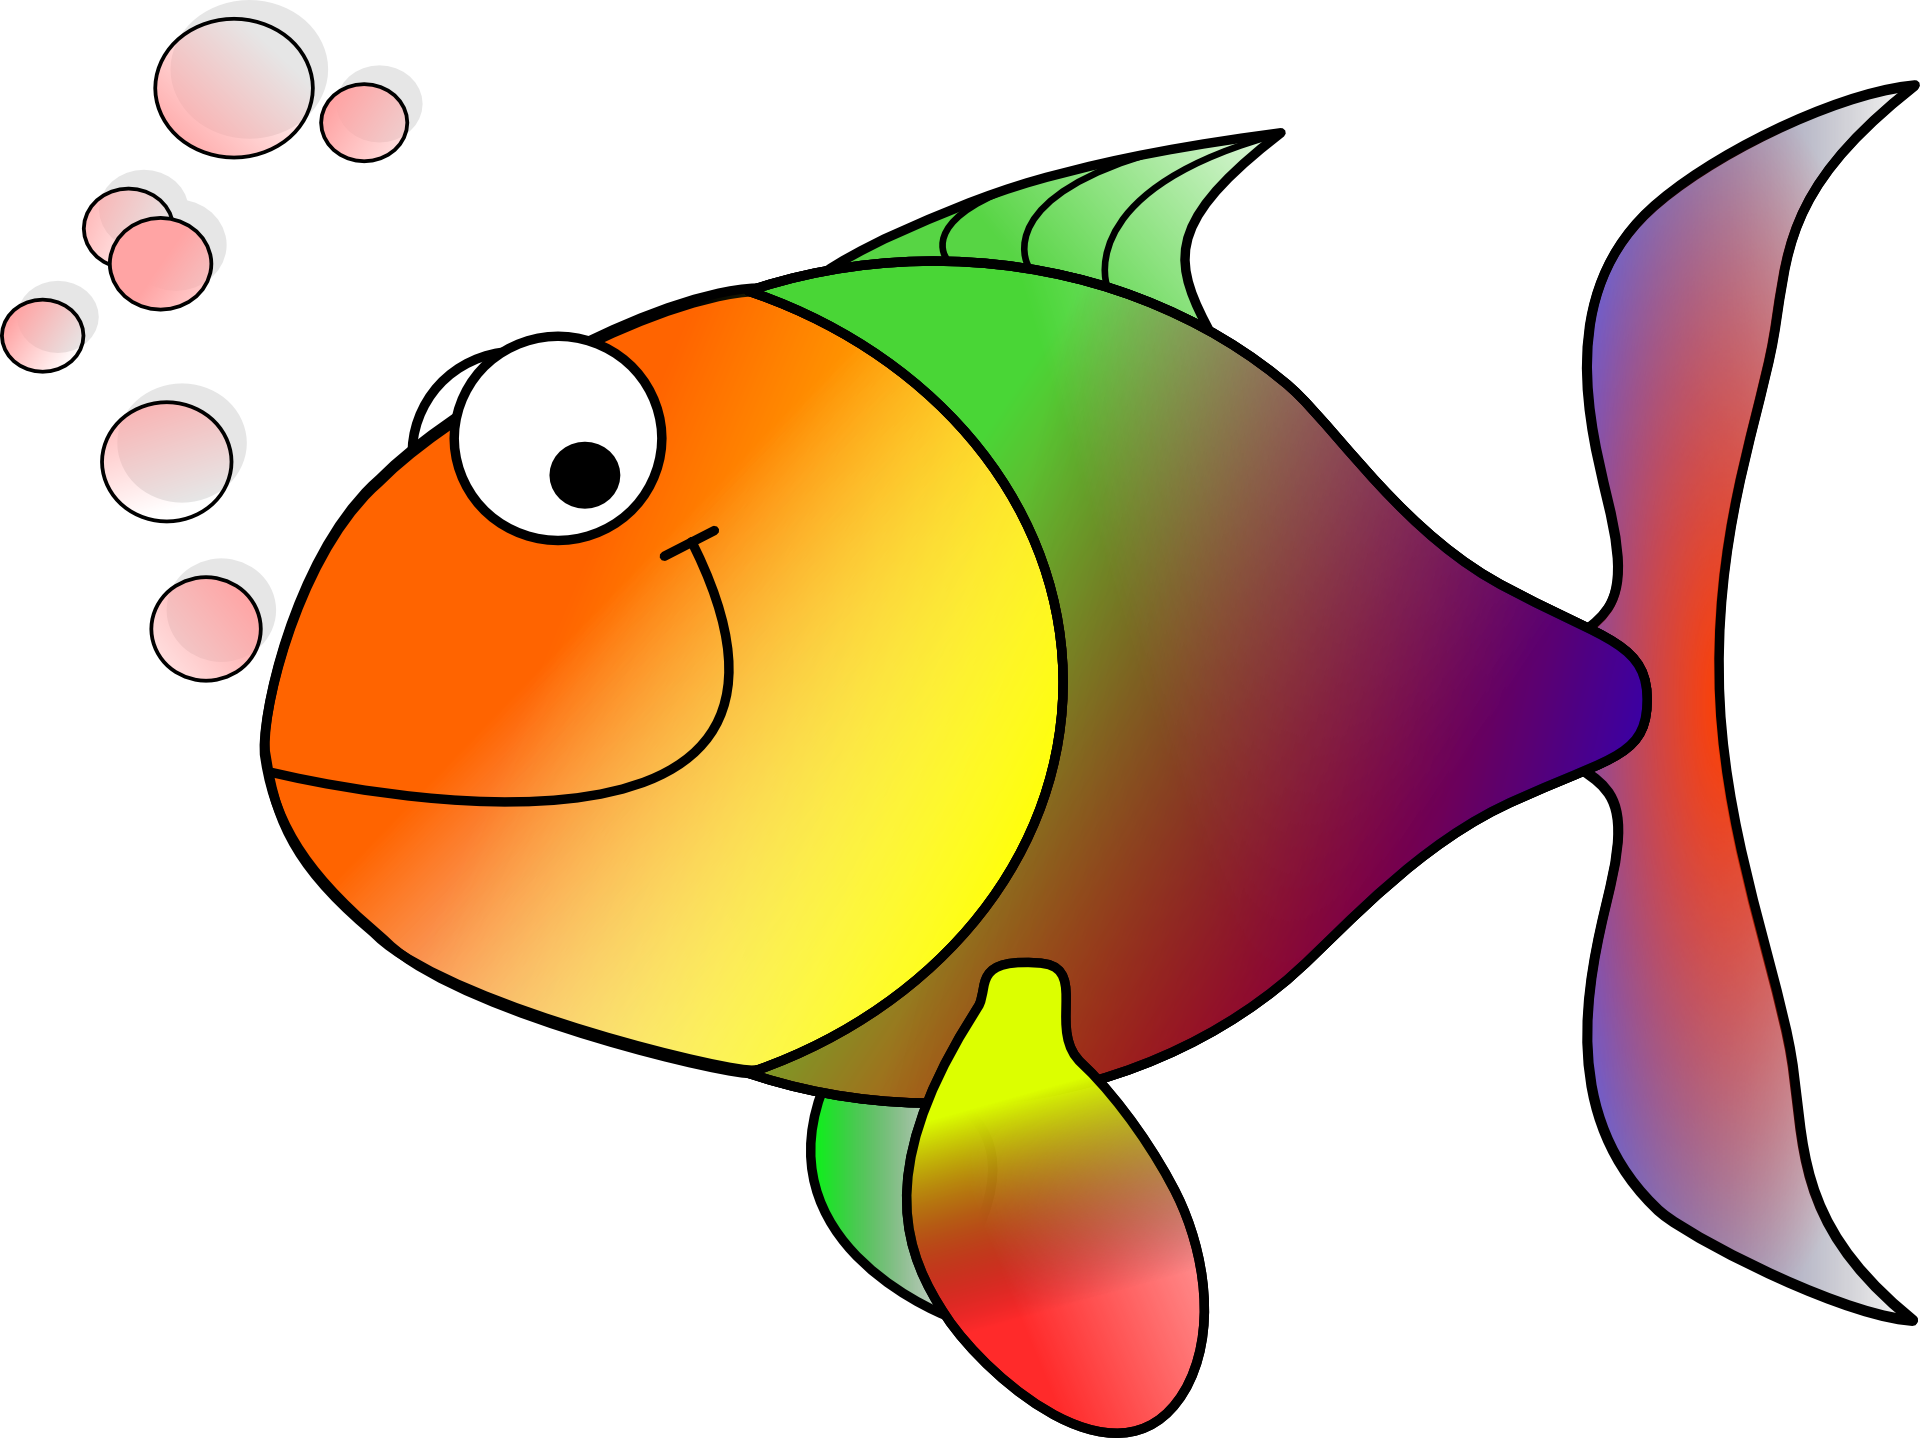 Fish with gills clipart. Fishes foxlightnews it has